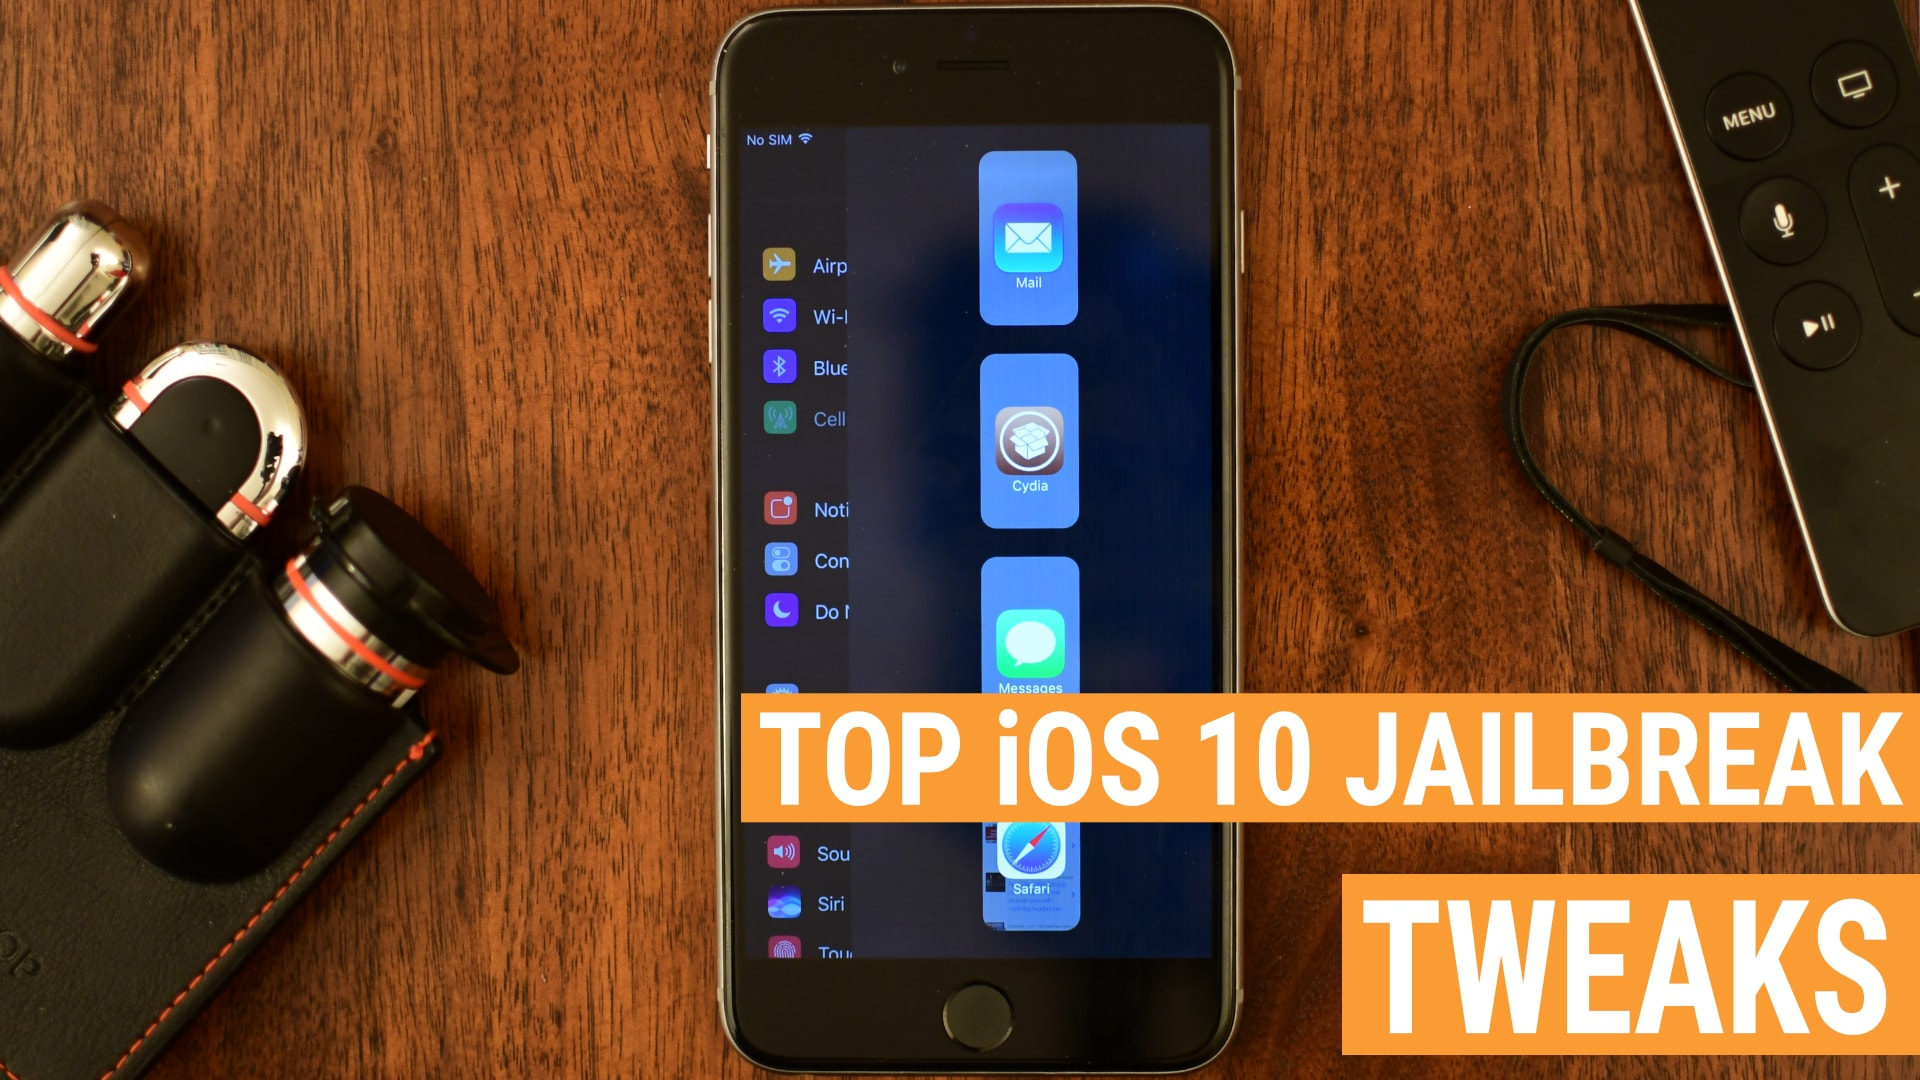 The best iOS 10 jailbreak tweaks